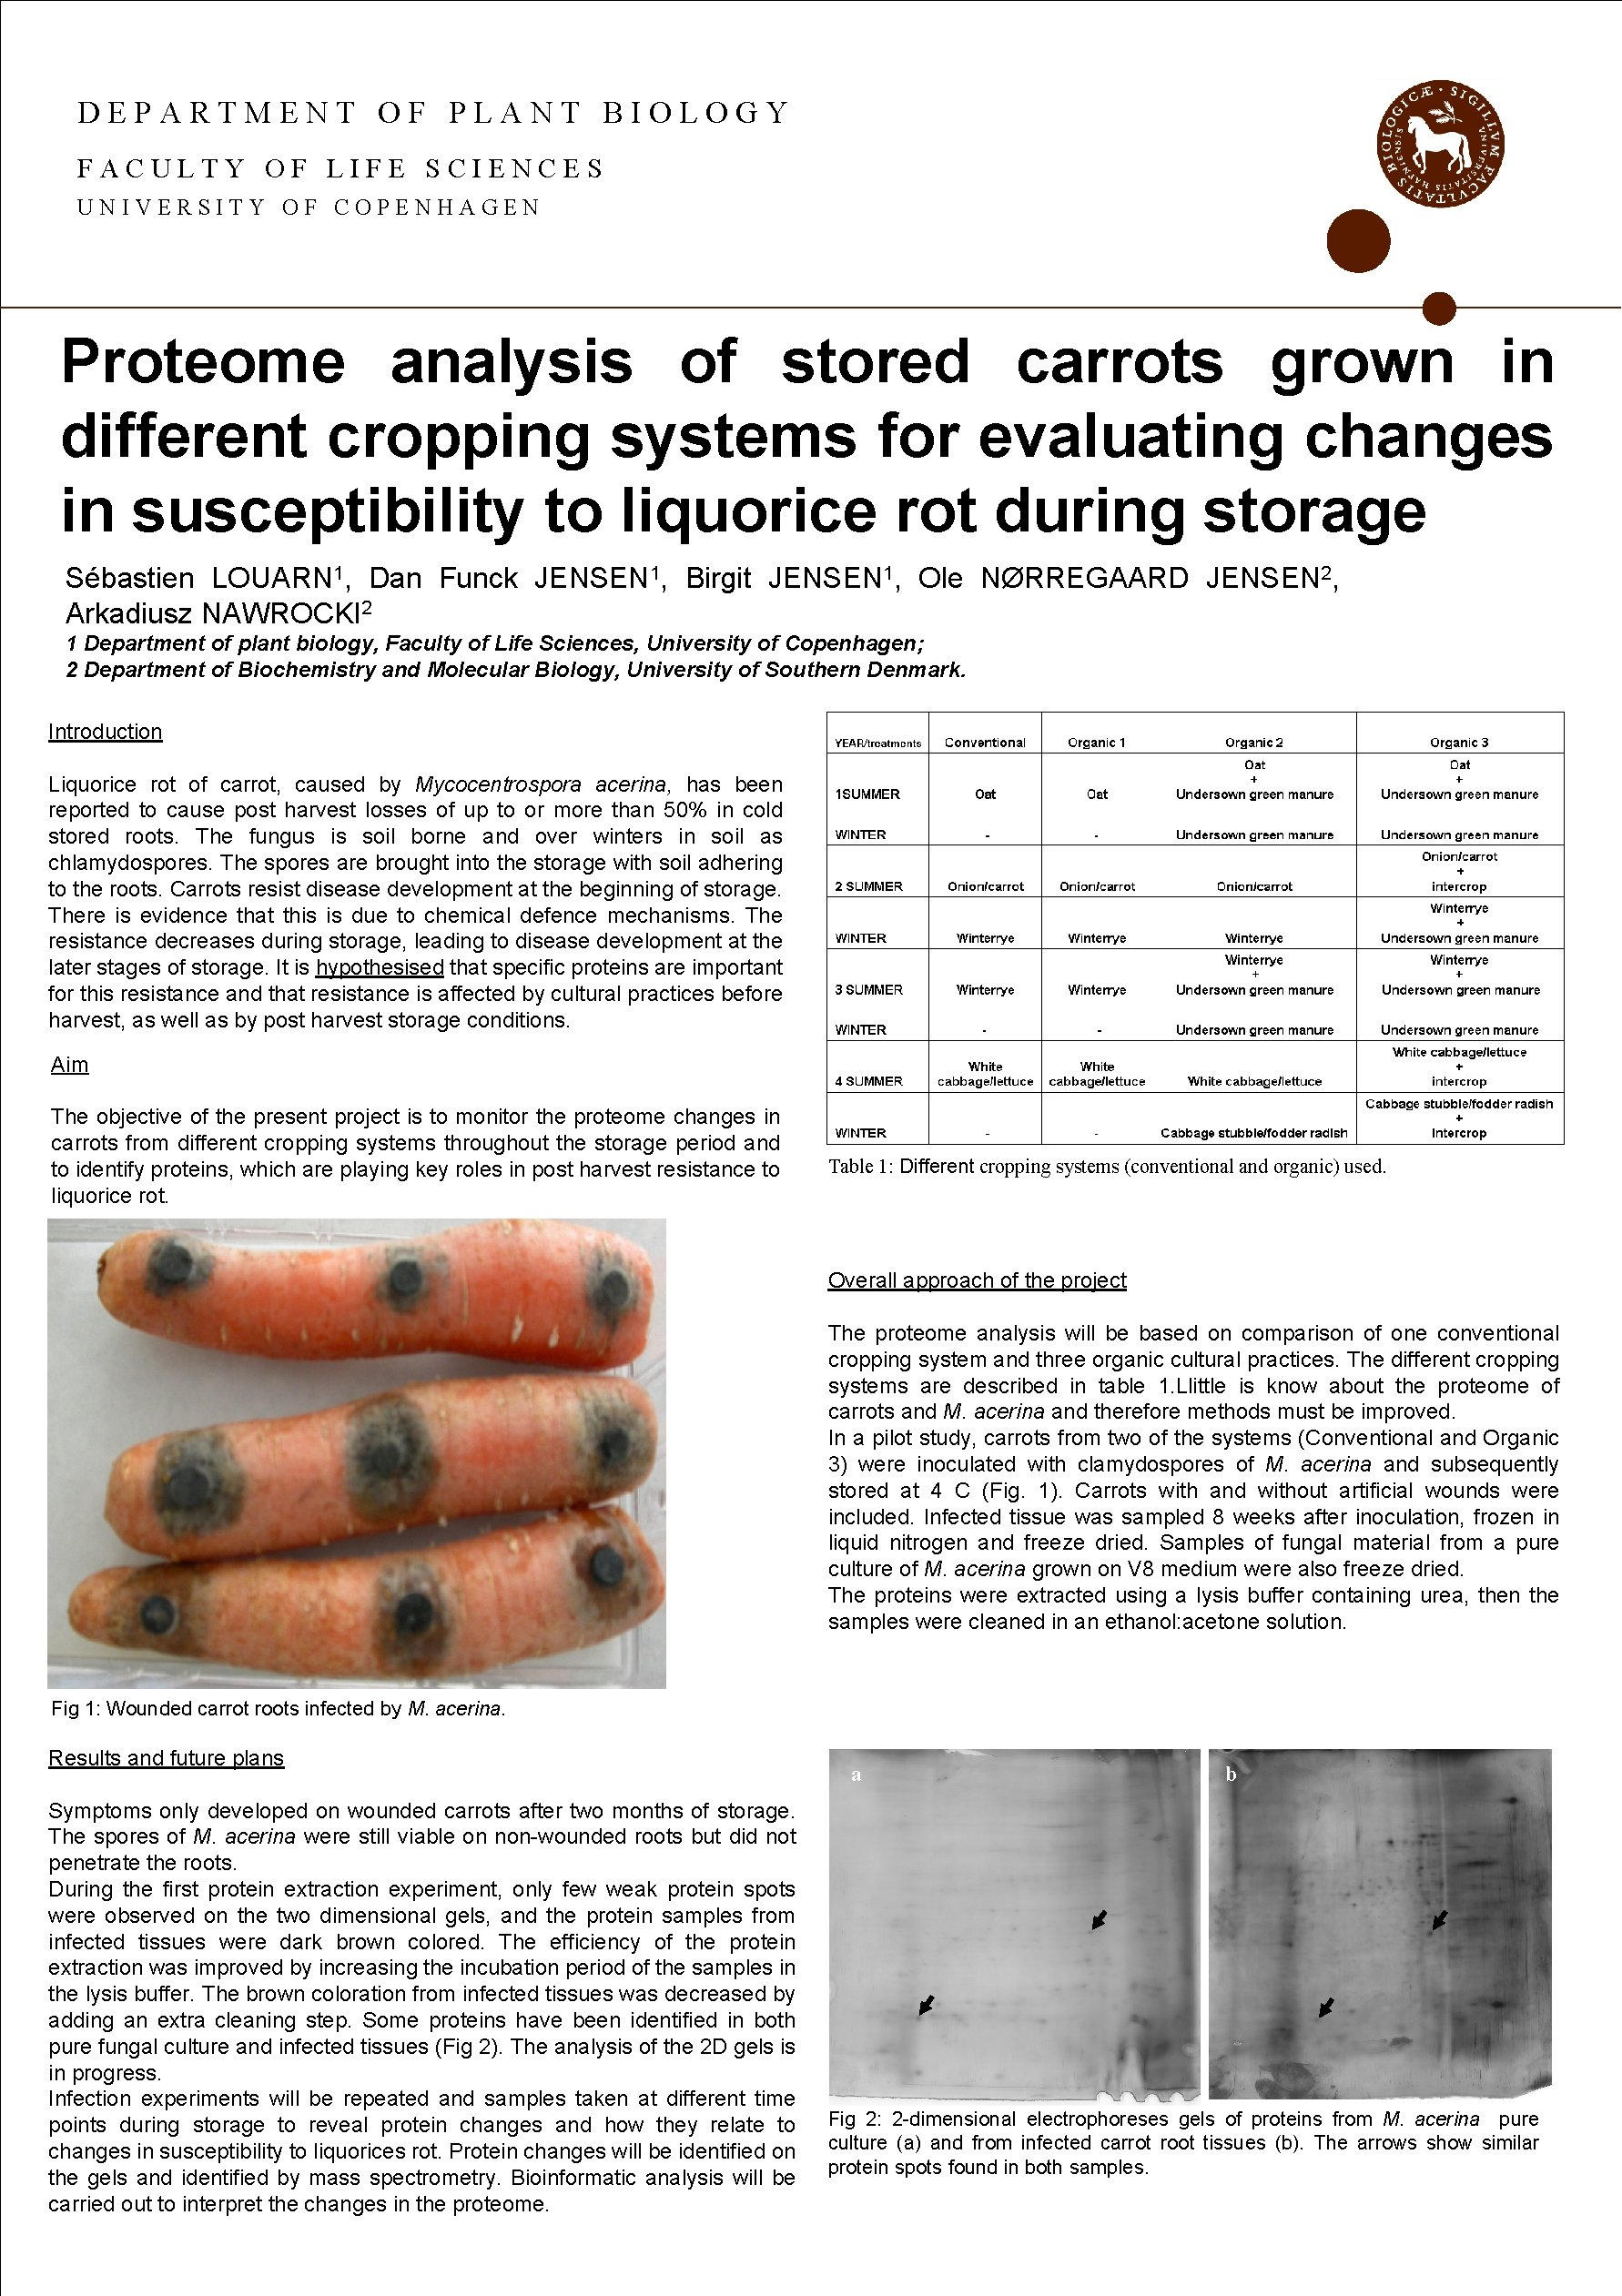 DEPARTMENT OF PLANT BIOLOGY FACULTY OF LIFE SCIENCES UNIVERSITY OF COPENHAGEN Proteome analysis of